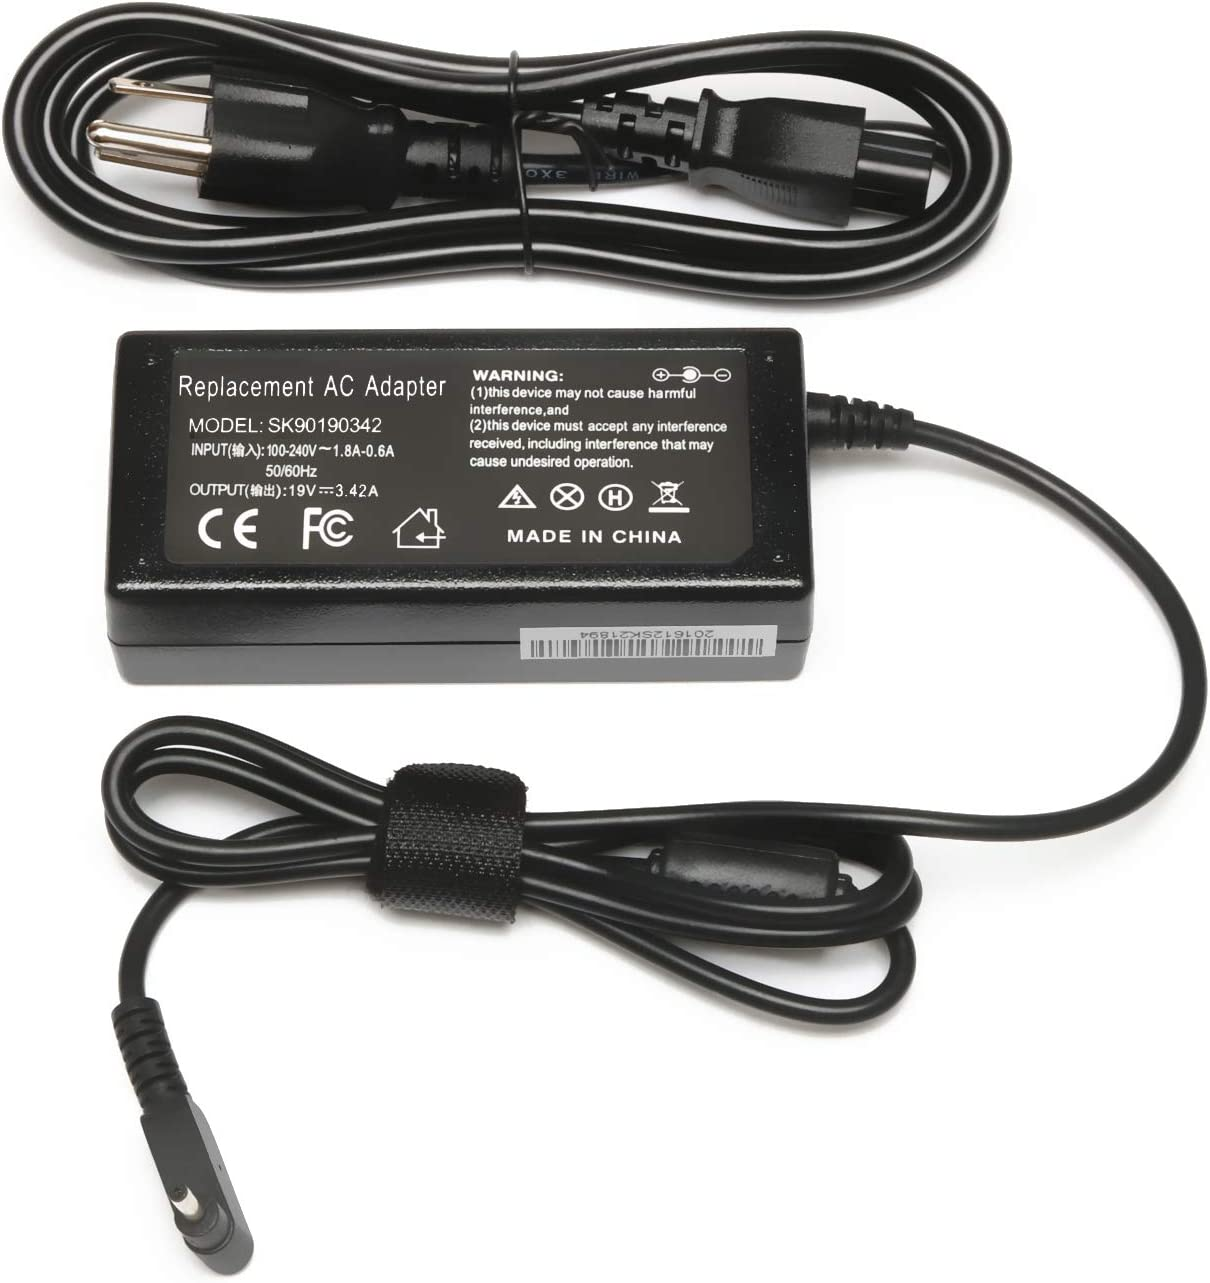 65W Ac Adapter/Laptop Charger/Power Supply for Acer Aspire 5 A515-54 A515-54G A515-55:A515-54-37U3 A515-54-55ZD A515-54-597W A515-54-79J5 A515-54G-73WC A515-54G-54QQ;A515-55-588C 55-56UK